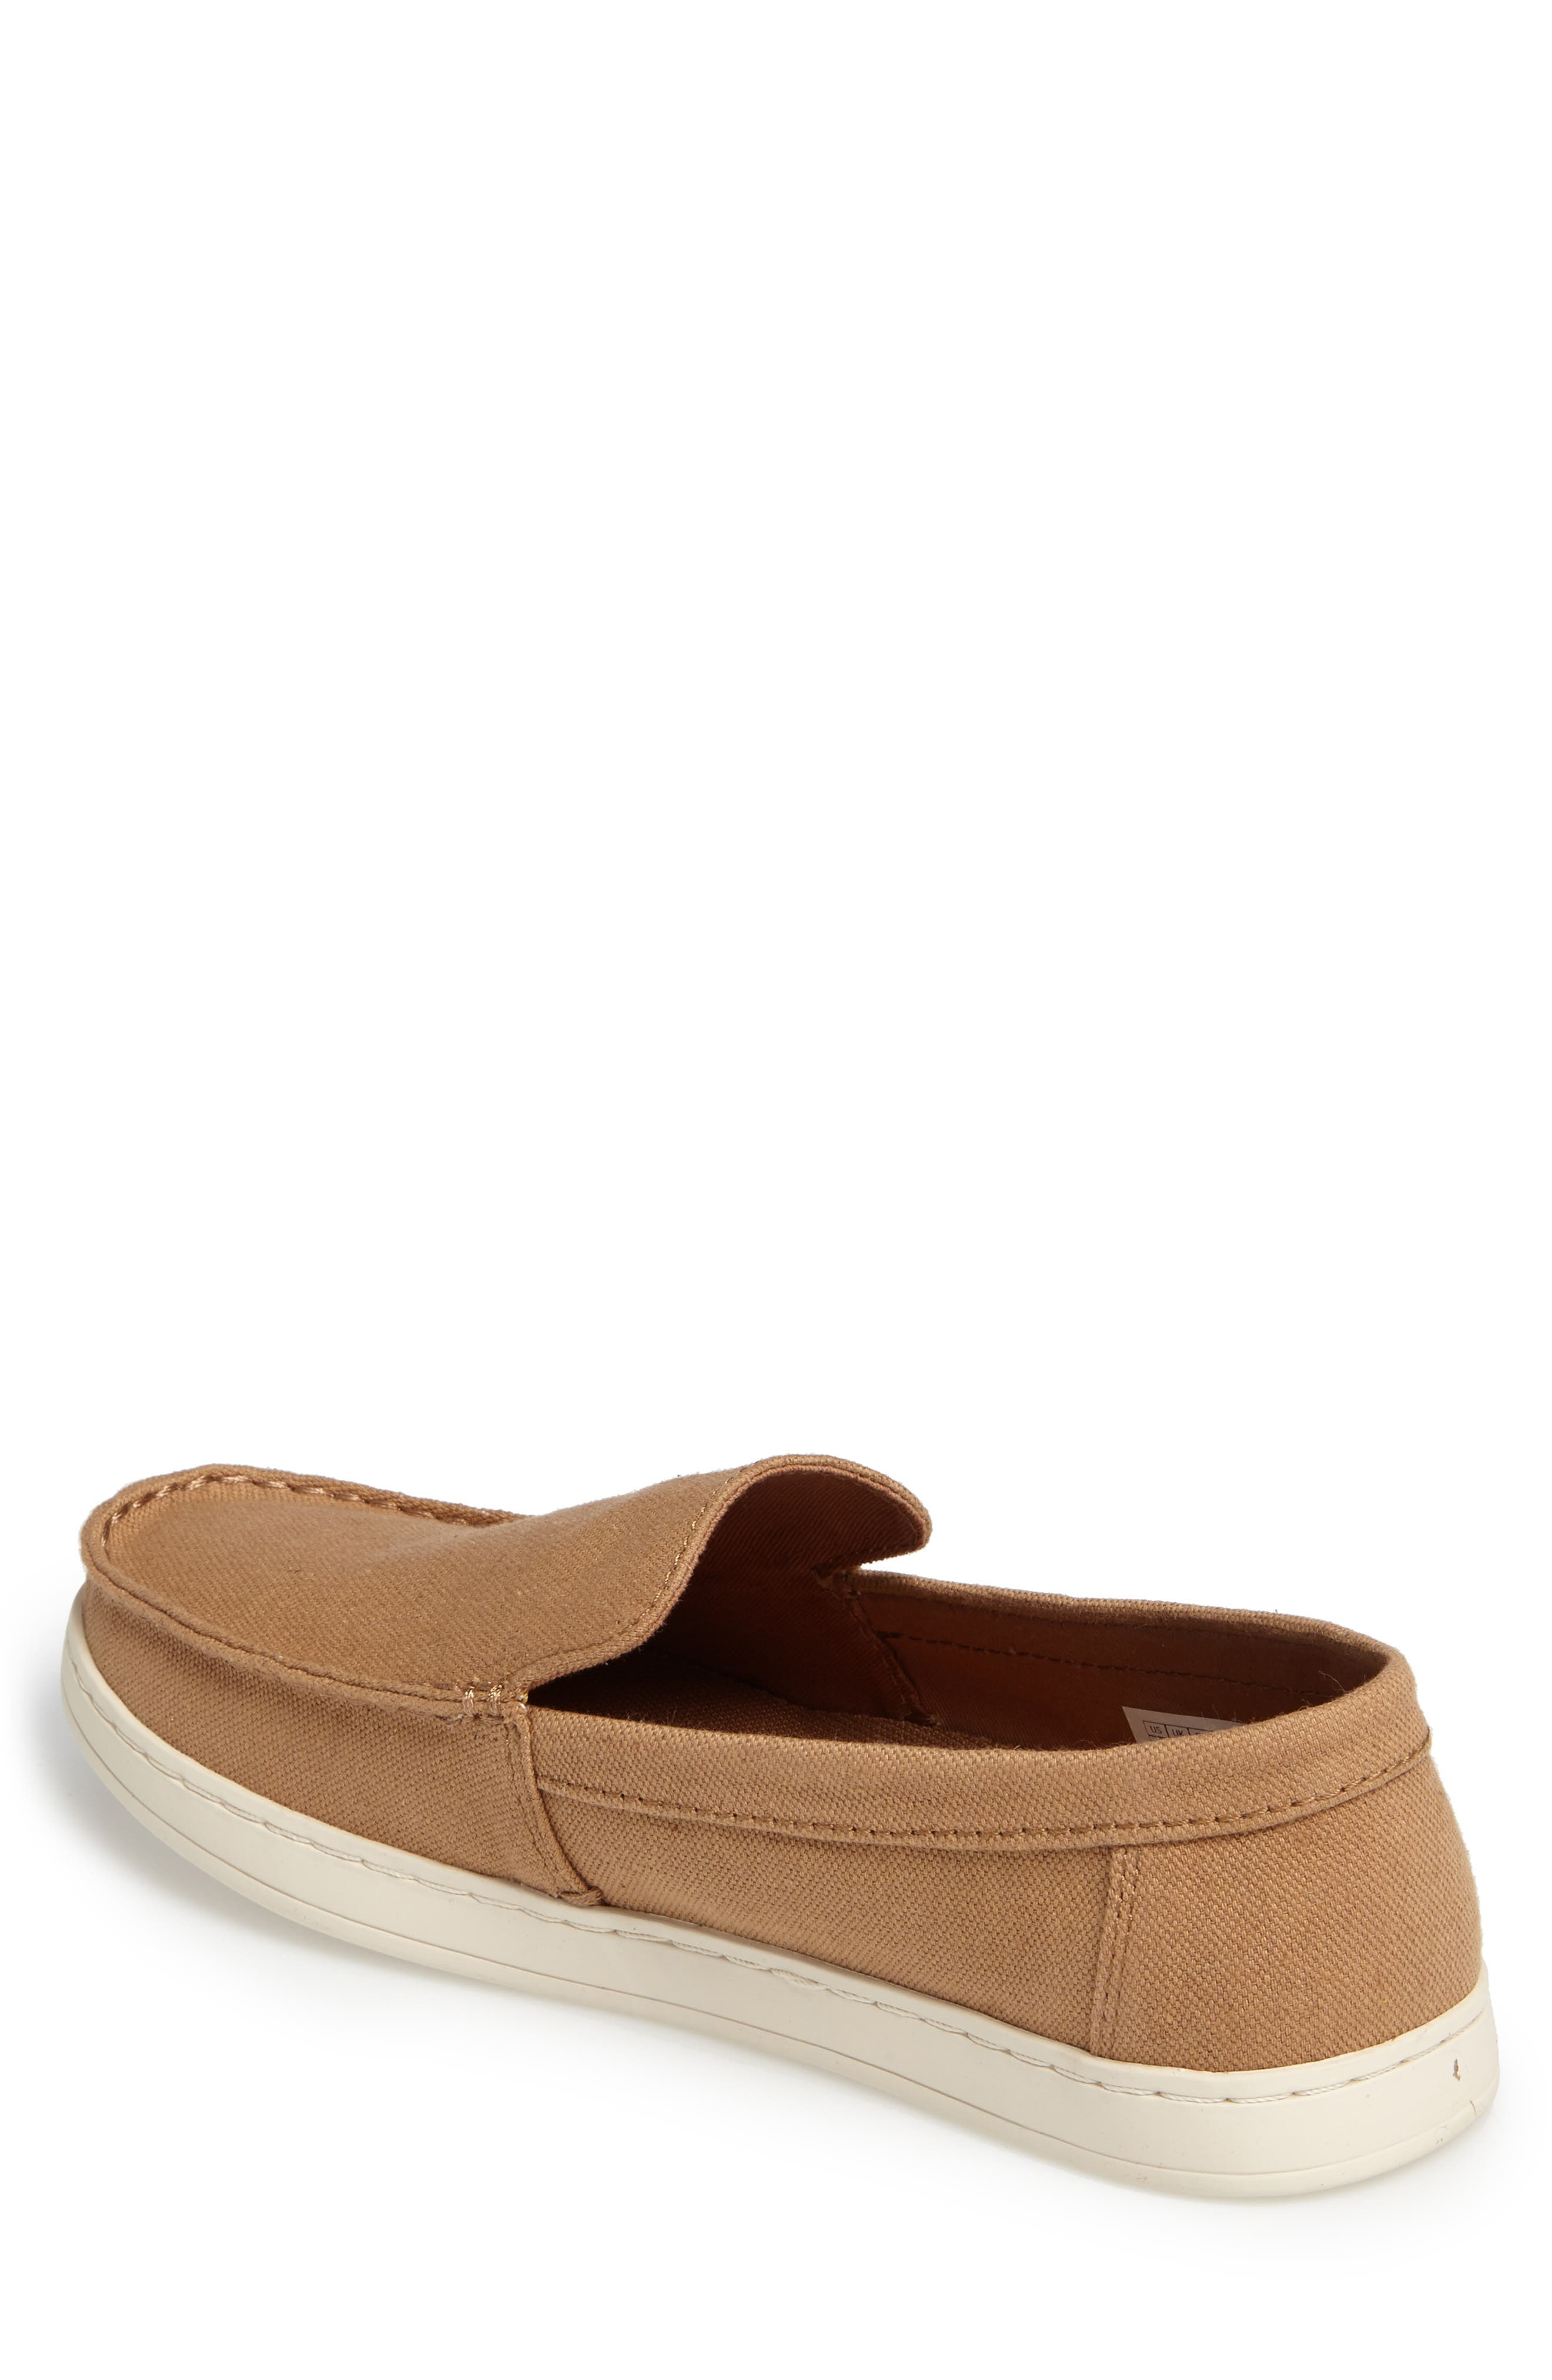 Aiden Slip-On Loafer,                             Alternate thumbnail 2, color,                             Toffee